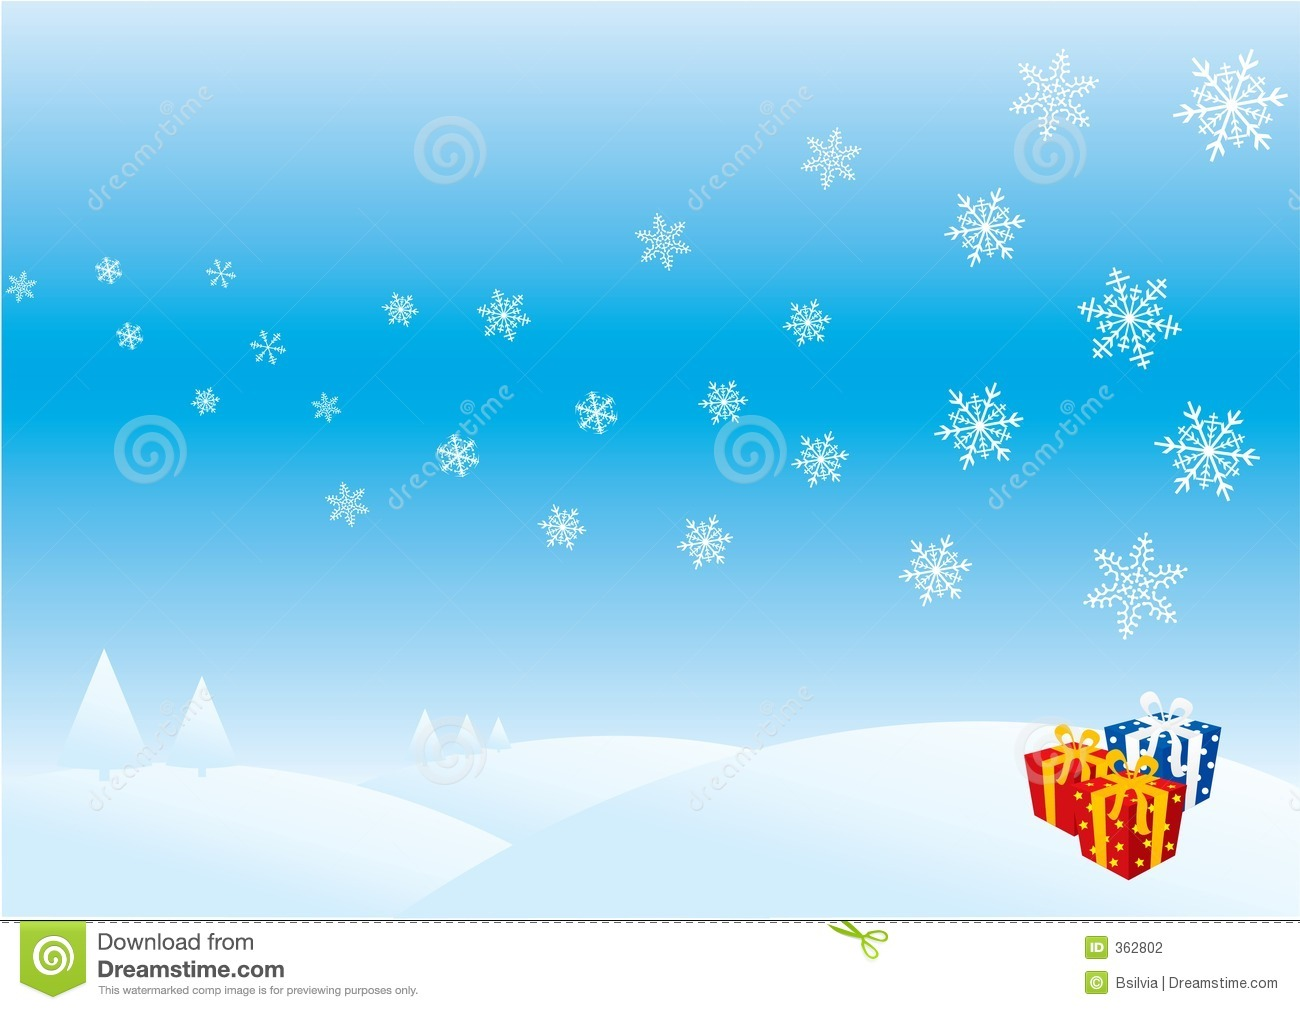 xmas background stock illustration. illustration of frost - 362802